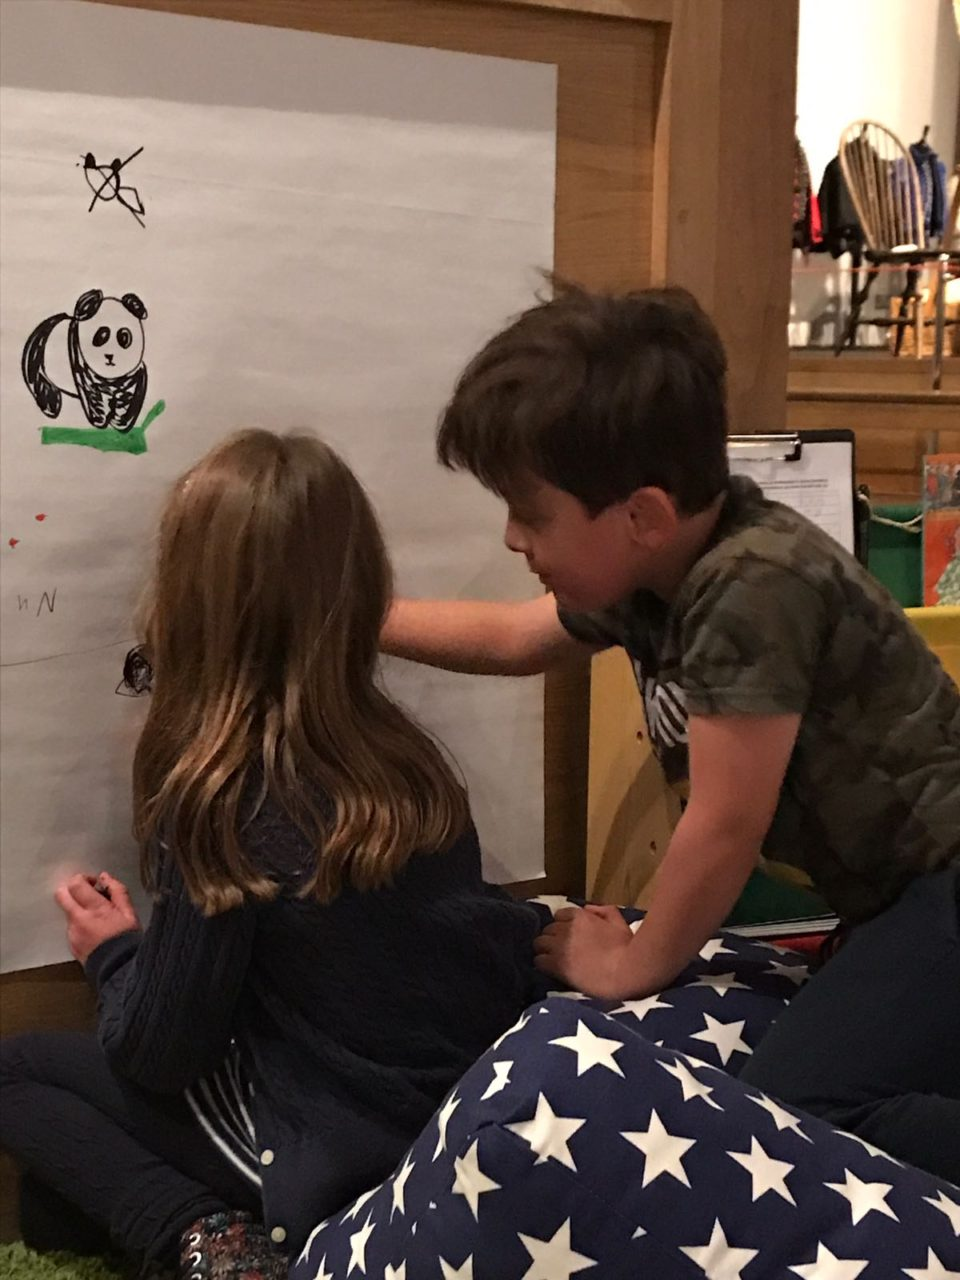 Children drawing pictures on  a board